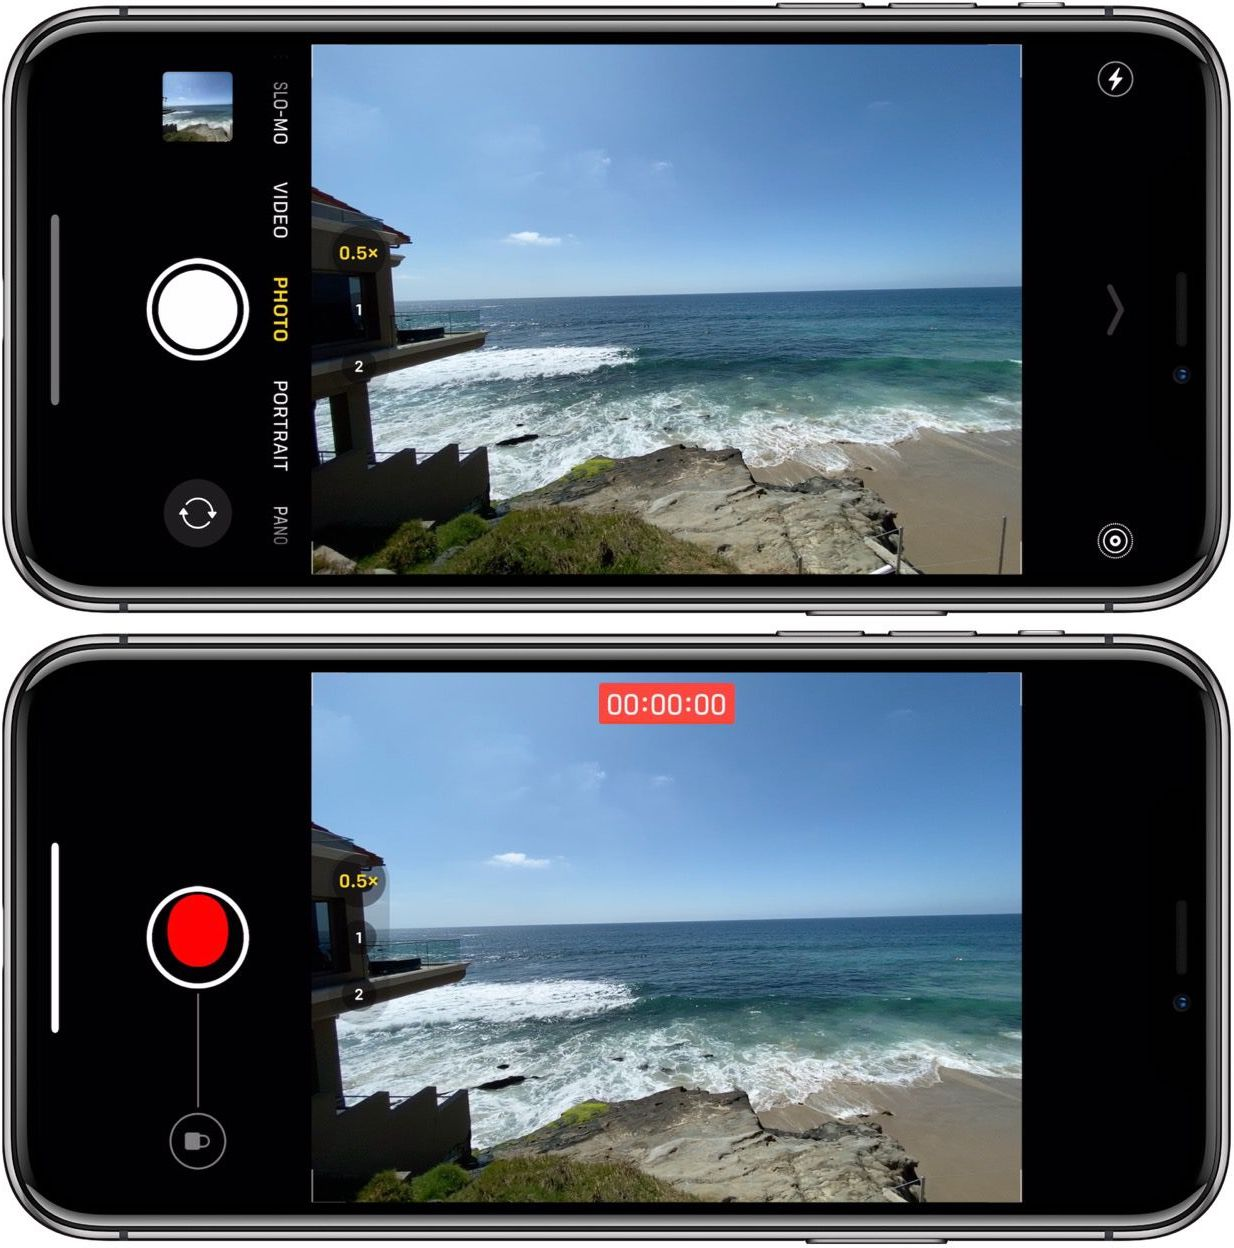 How to use burst mode iPhone 11 camera walkthrough 4